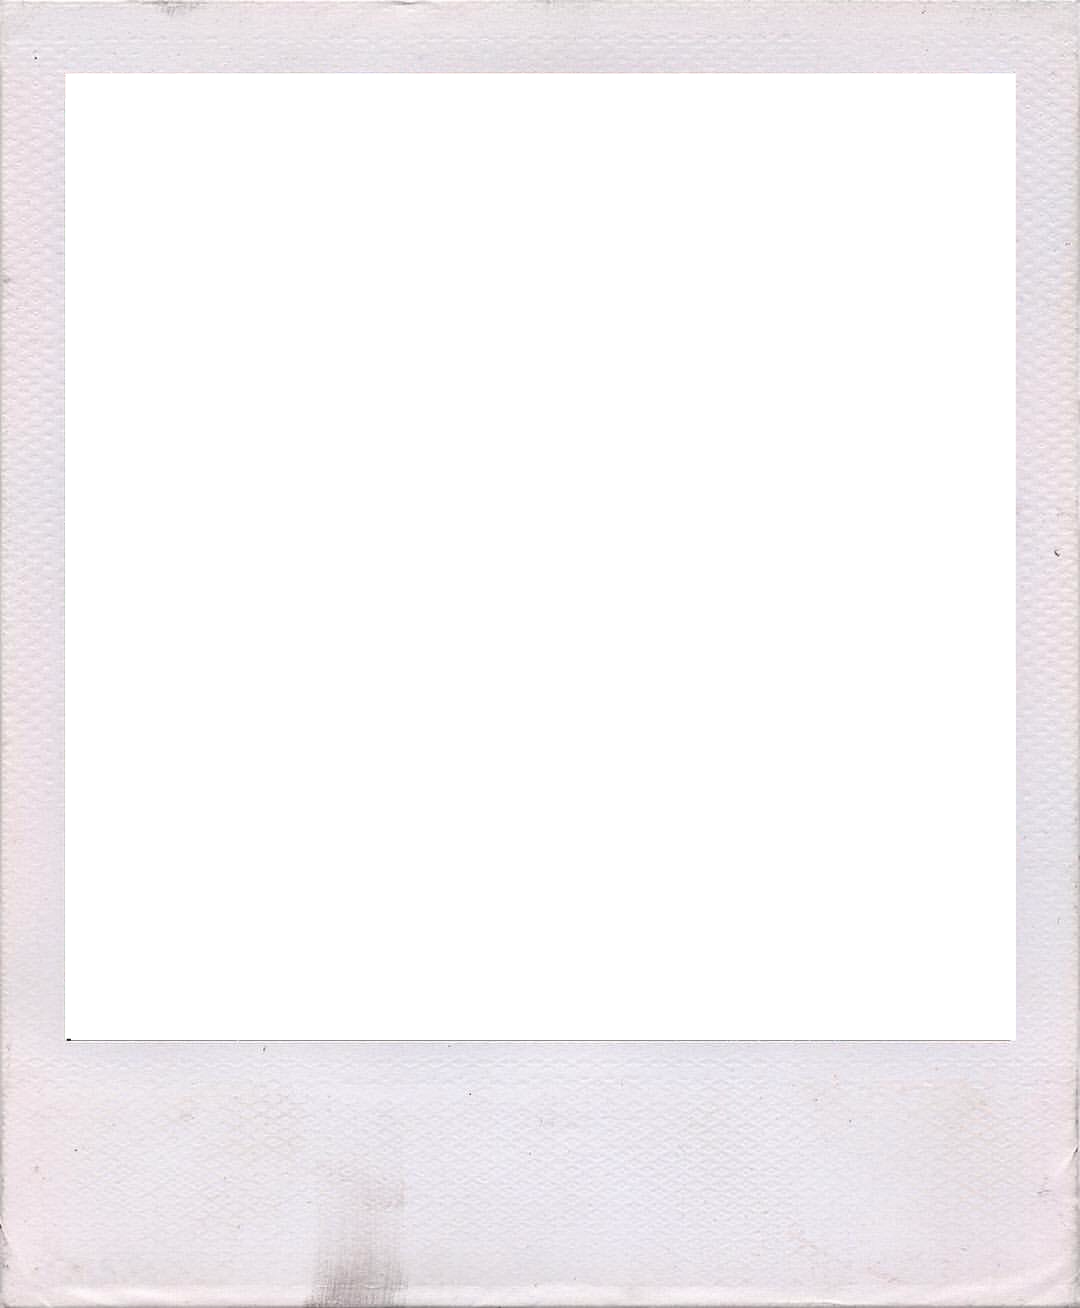 Polaroid frame png. Paper square rectangle picture